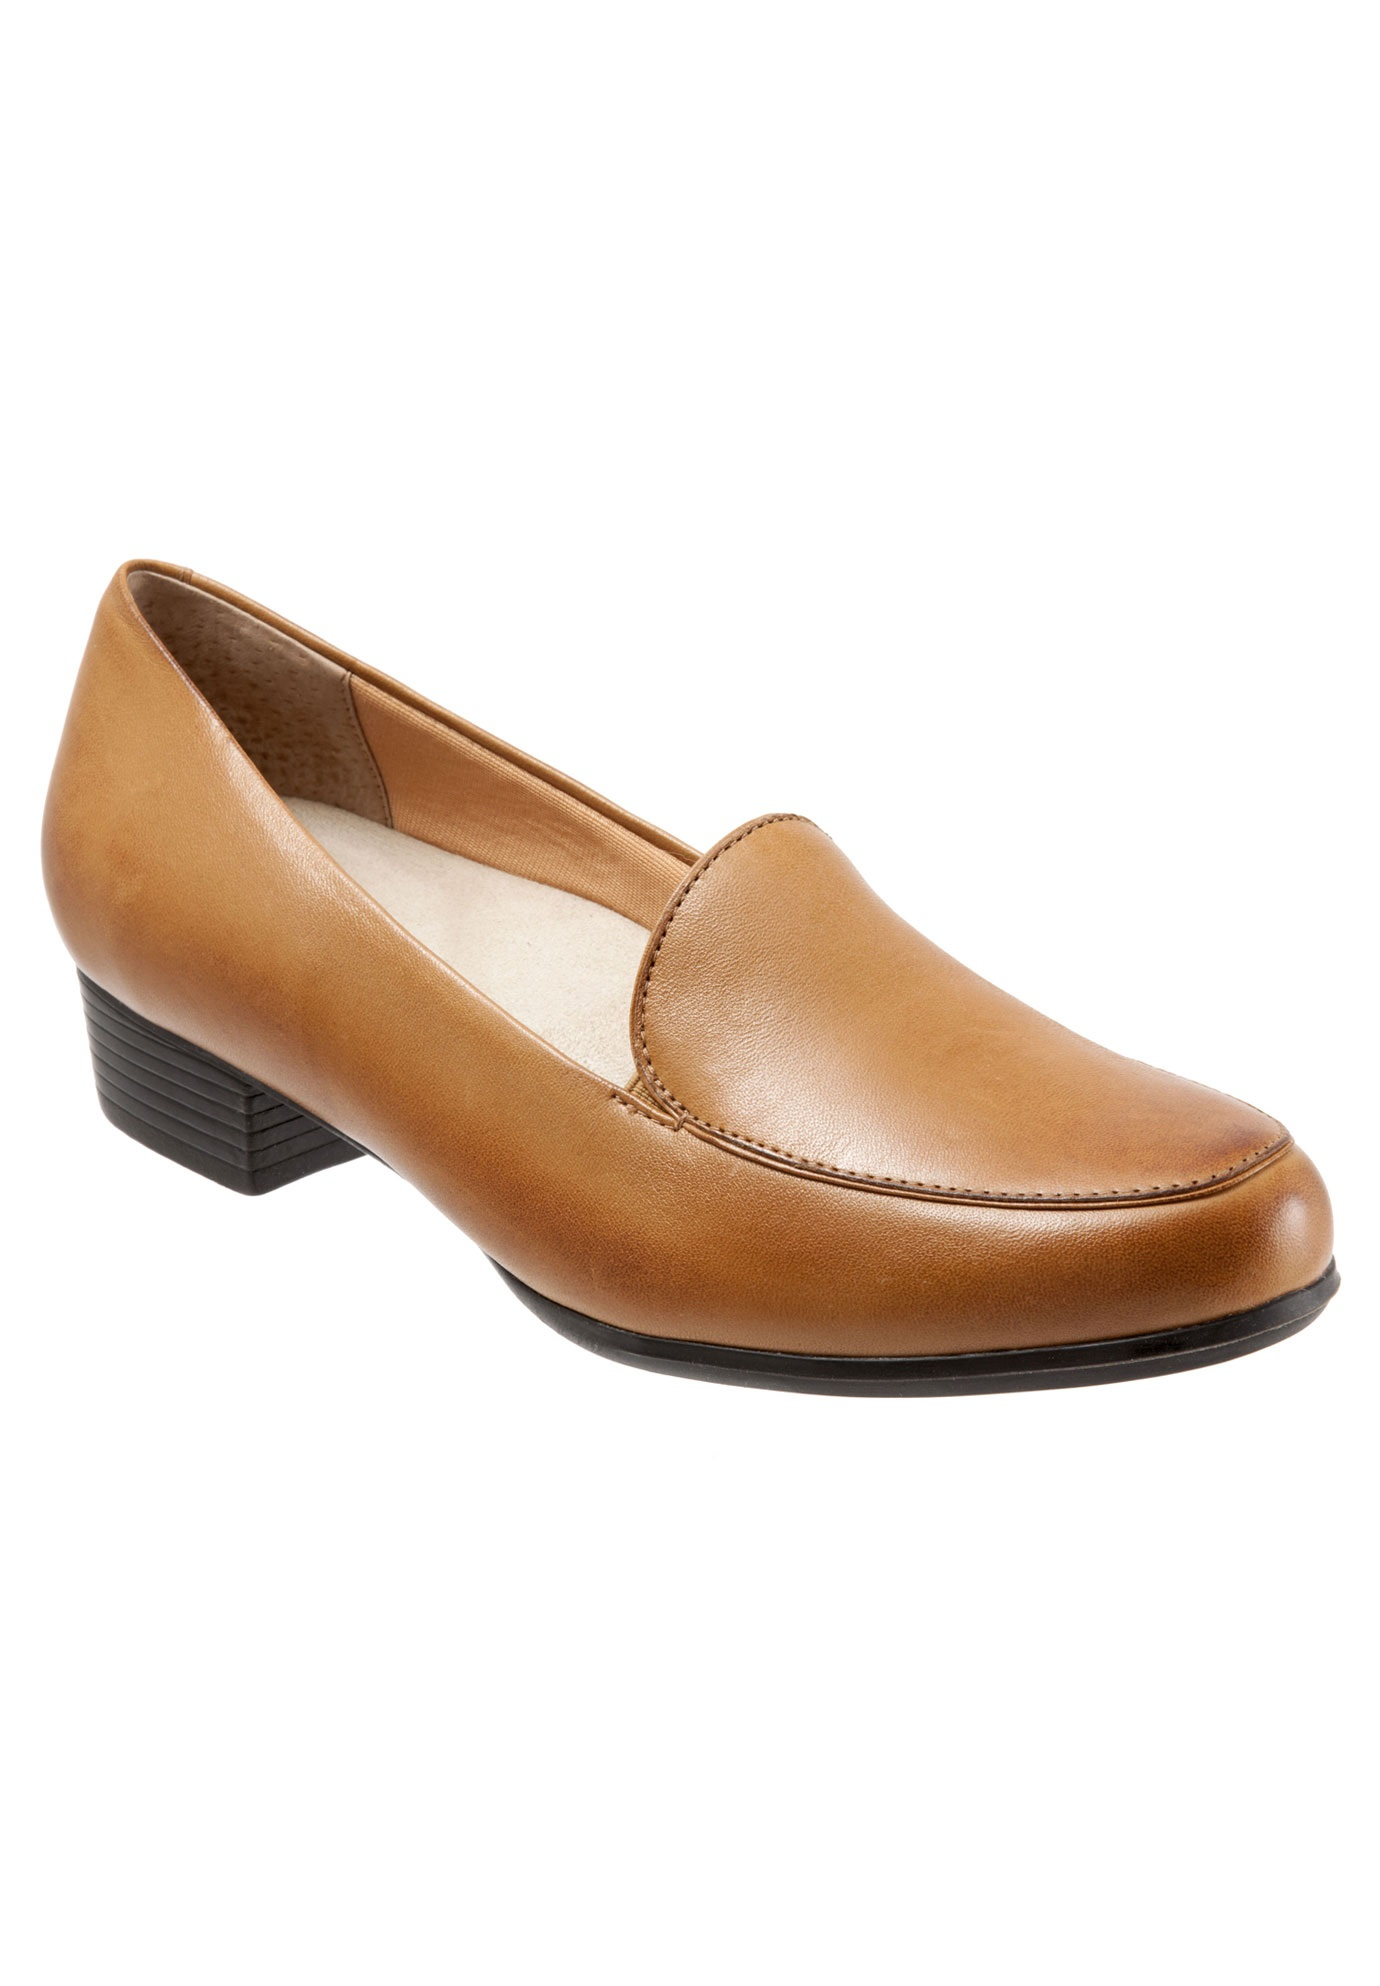 Monarch Flats by Trotters®,